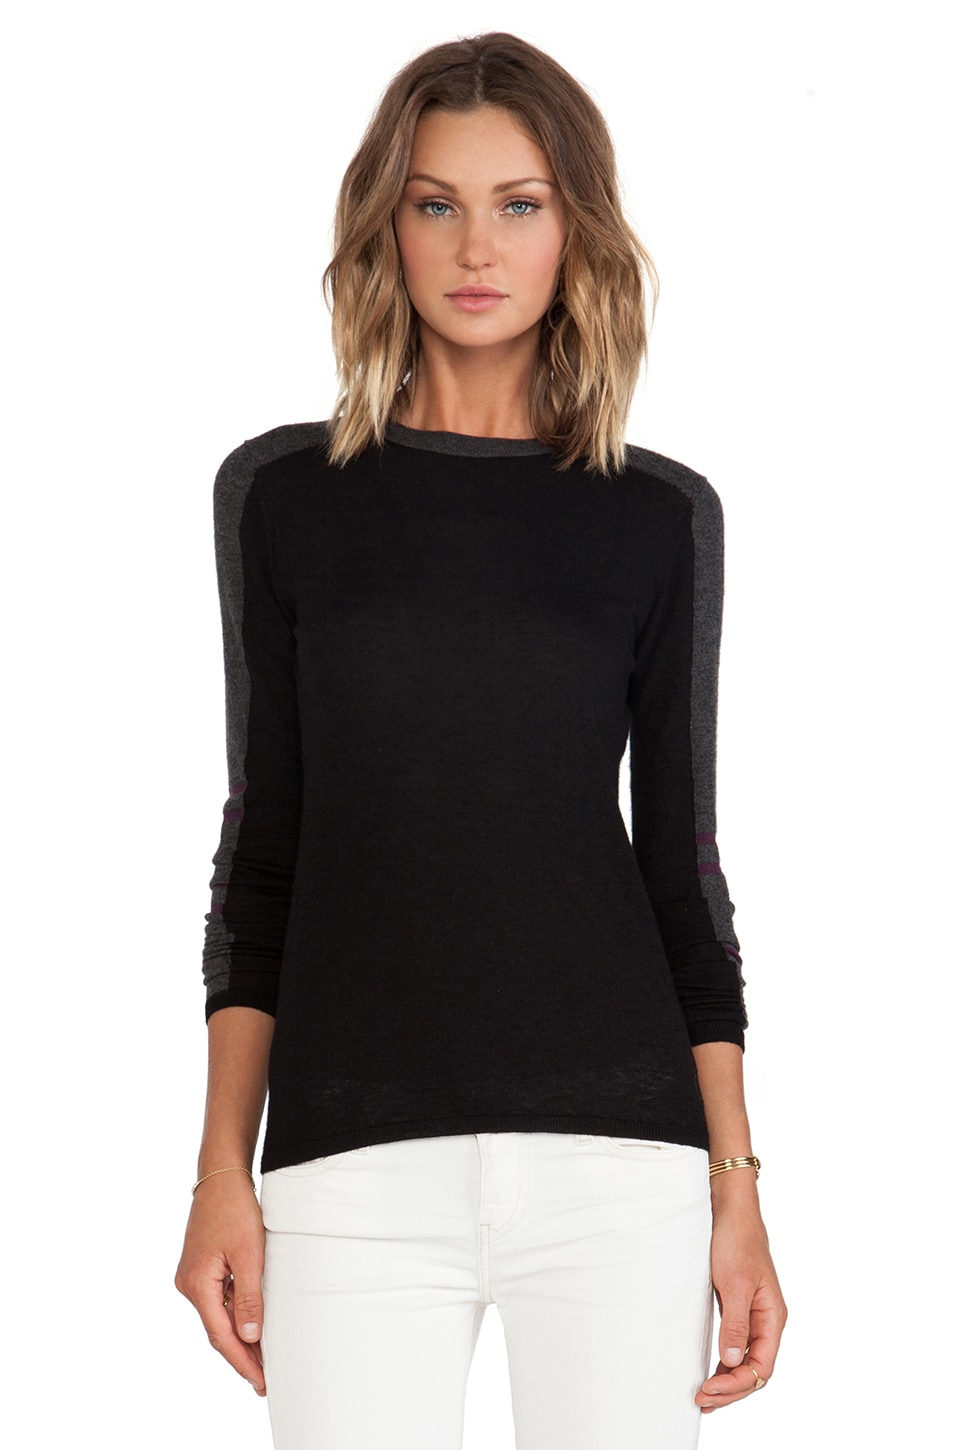 Autumn Cashmere Athletic Crew Sweater in Black Combo